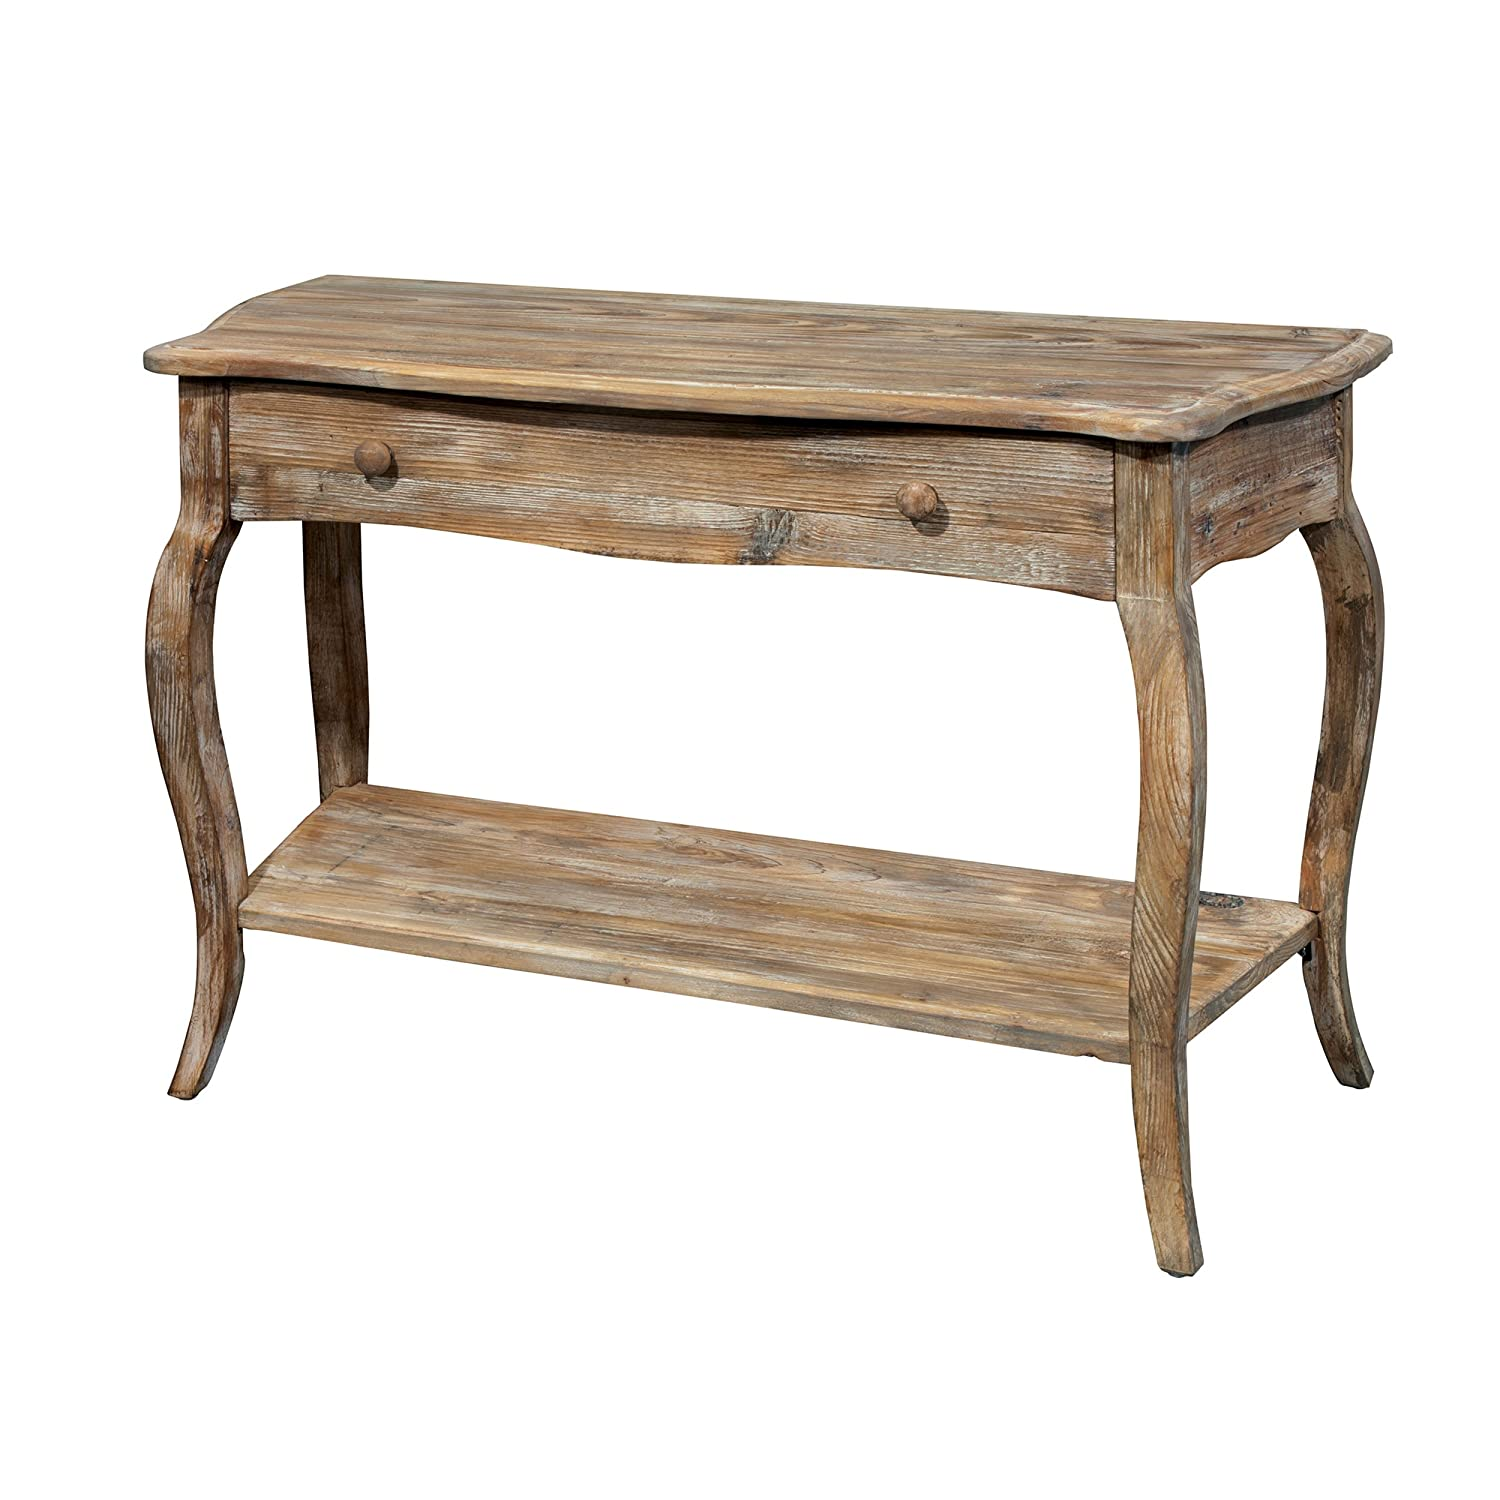 Groovy Austerity Reclaimed Wood Console Table With Open Shelf Driftwood Ibusinesslaw Wood Chair Design Ideas Ibusinesslaworg